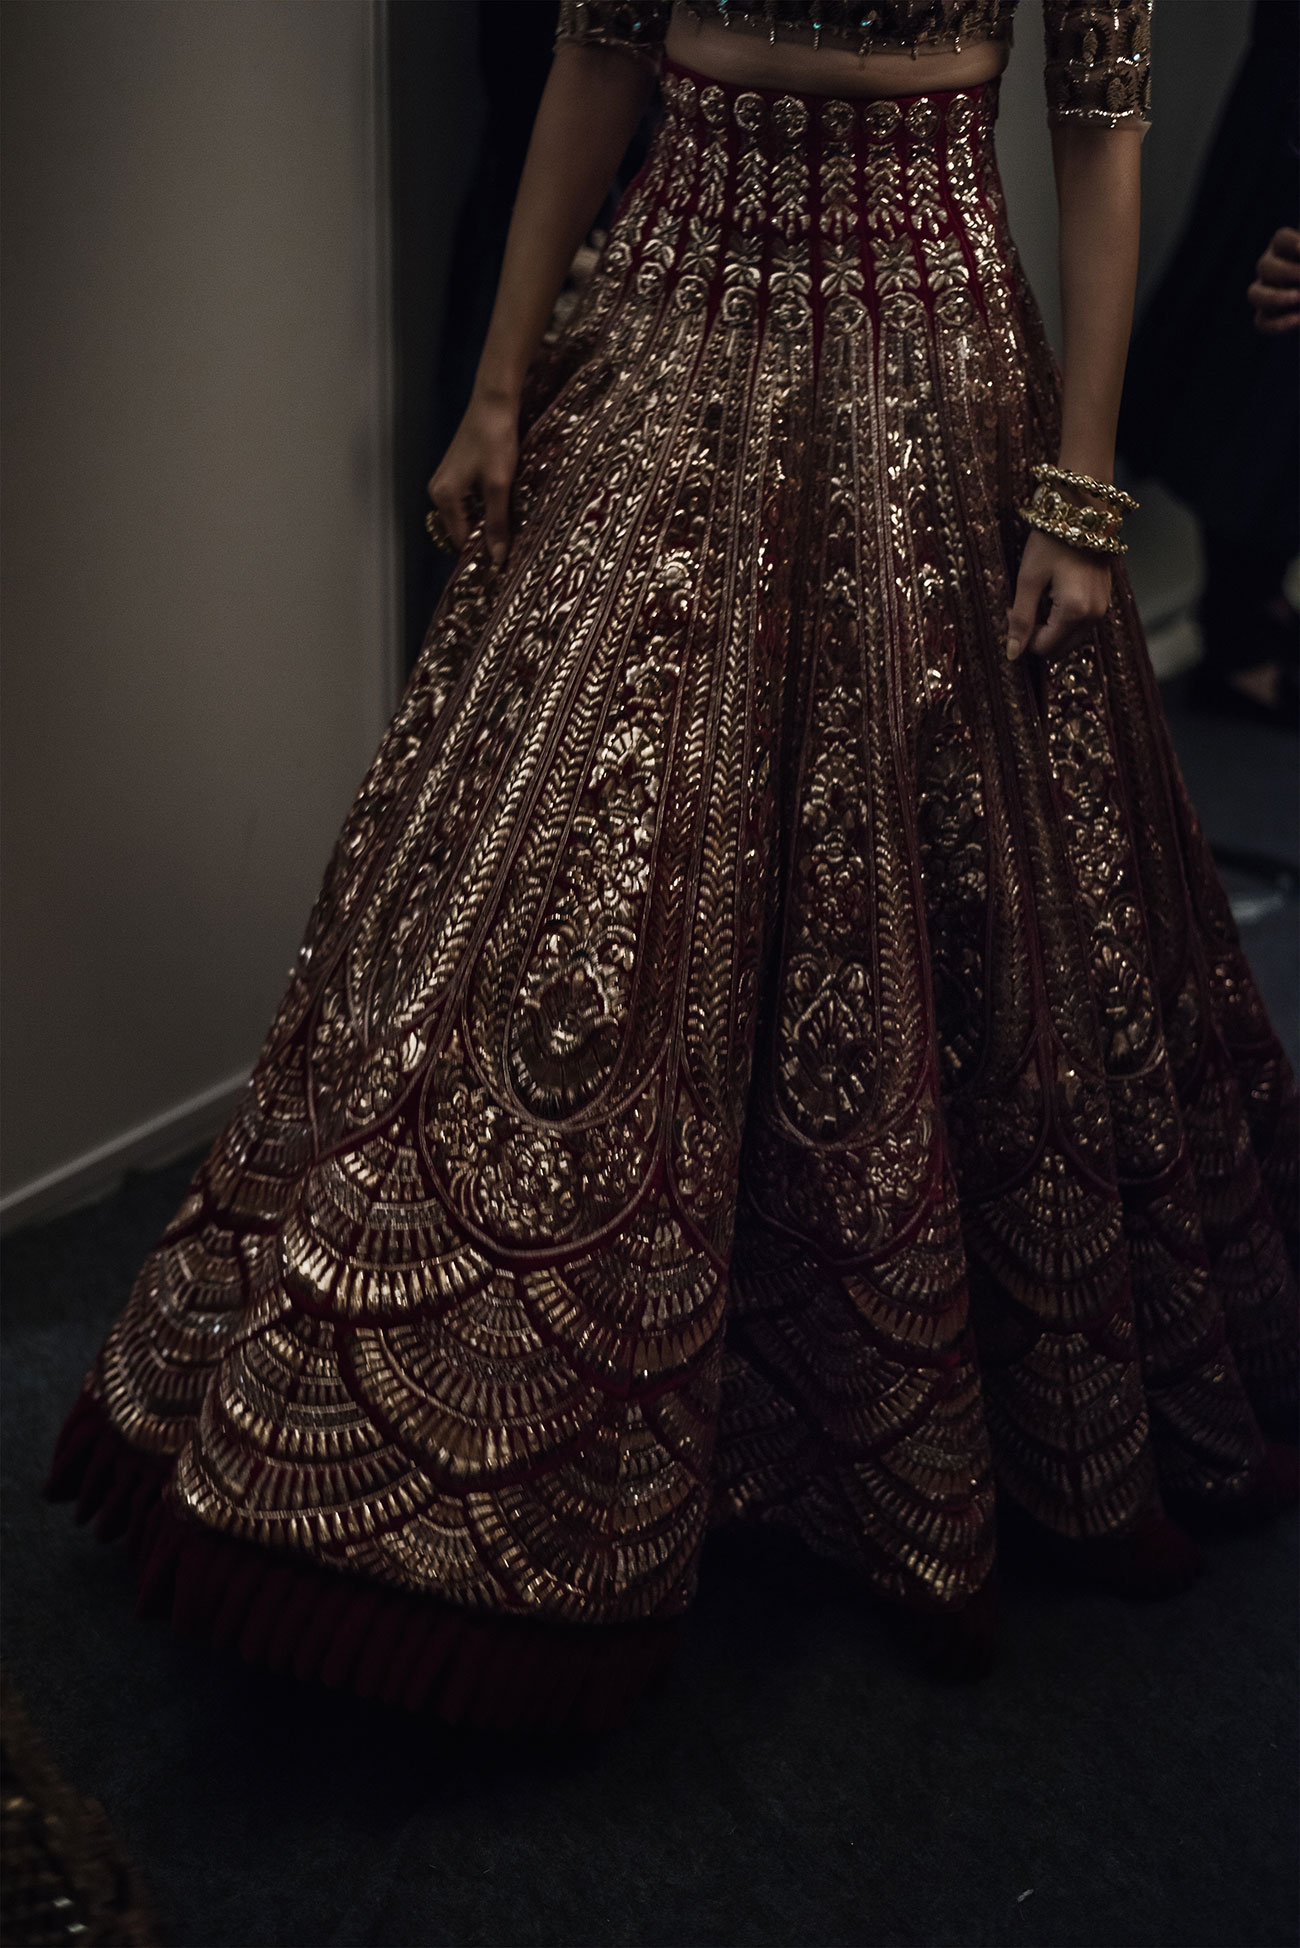 Backstage FDCI India Couture Week 2016 Photo by RAWKY KSH 29